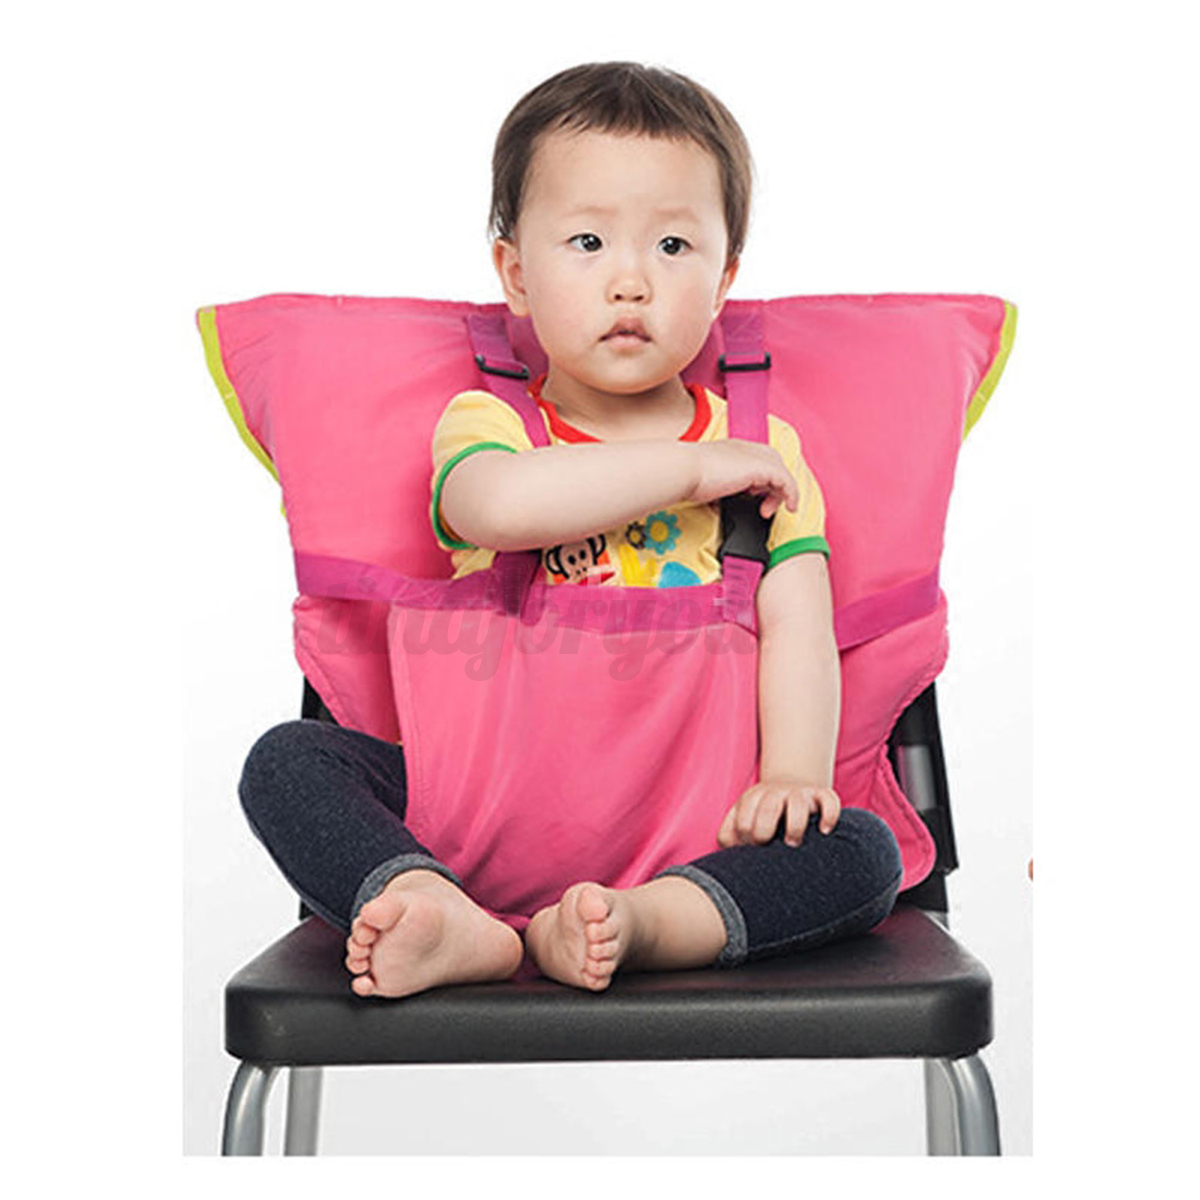 portable high chair baby thomasville dining chairs discontinued infant kids seat harness